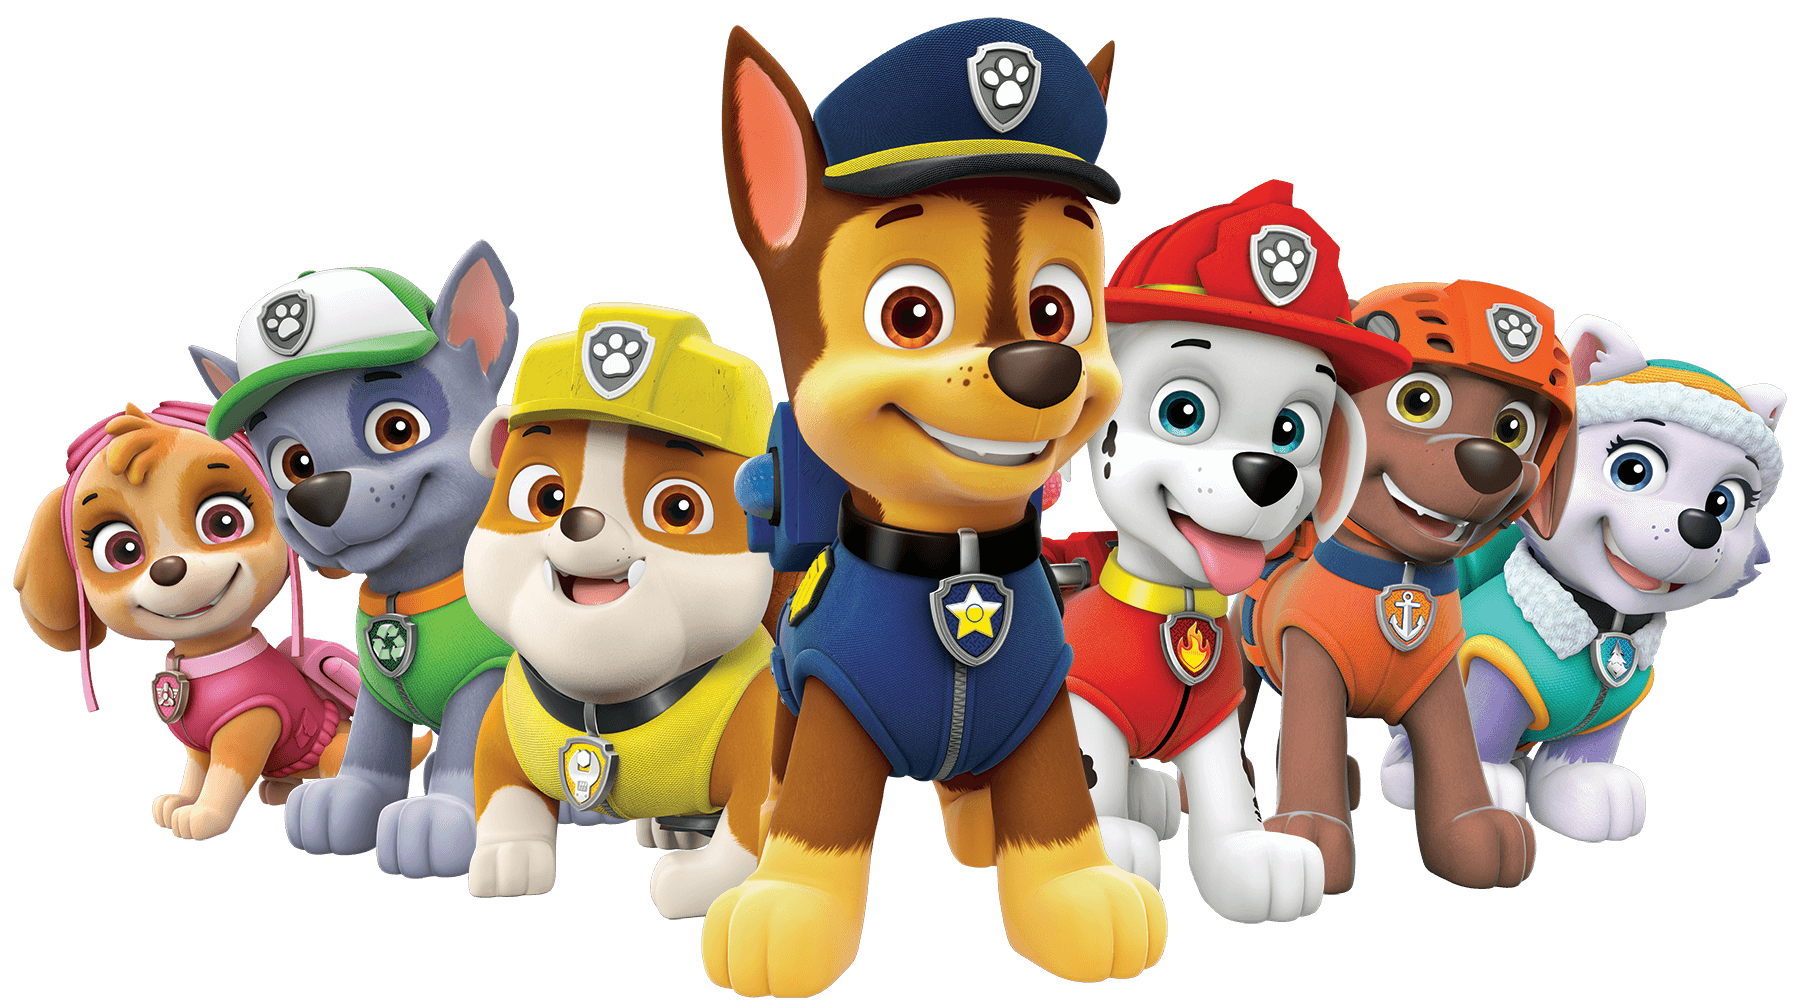 Paw Patrol Clipart at GetDrawings.com.